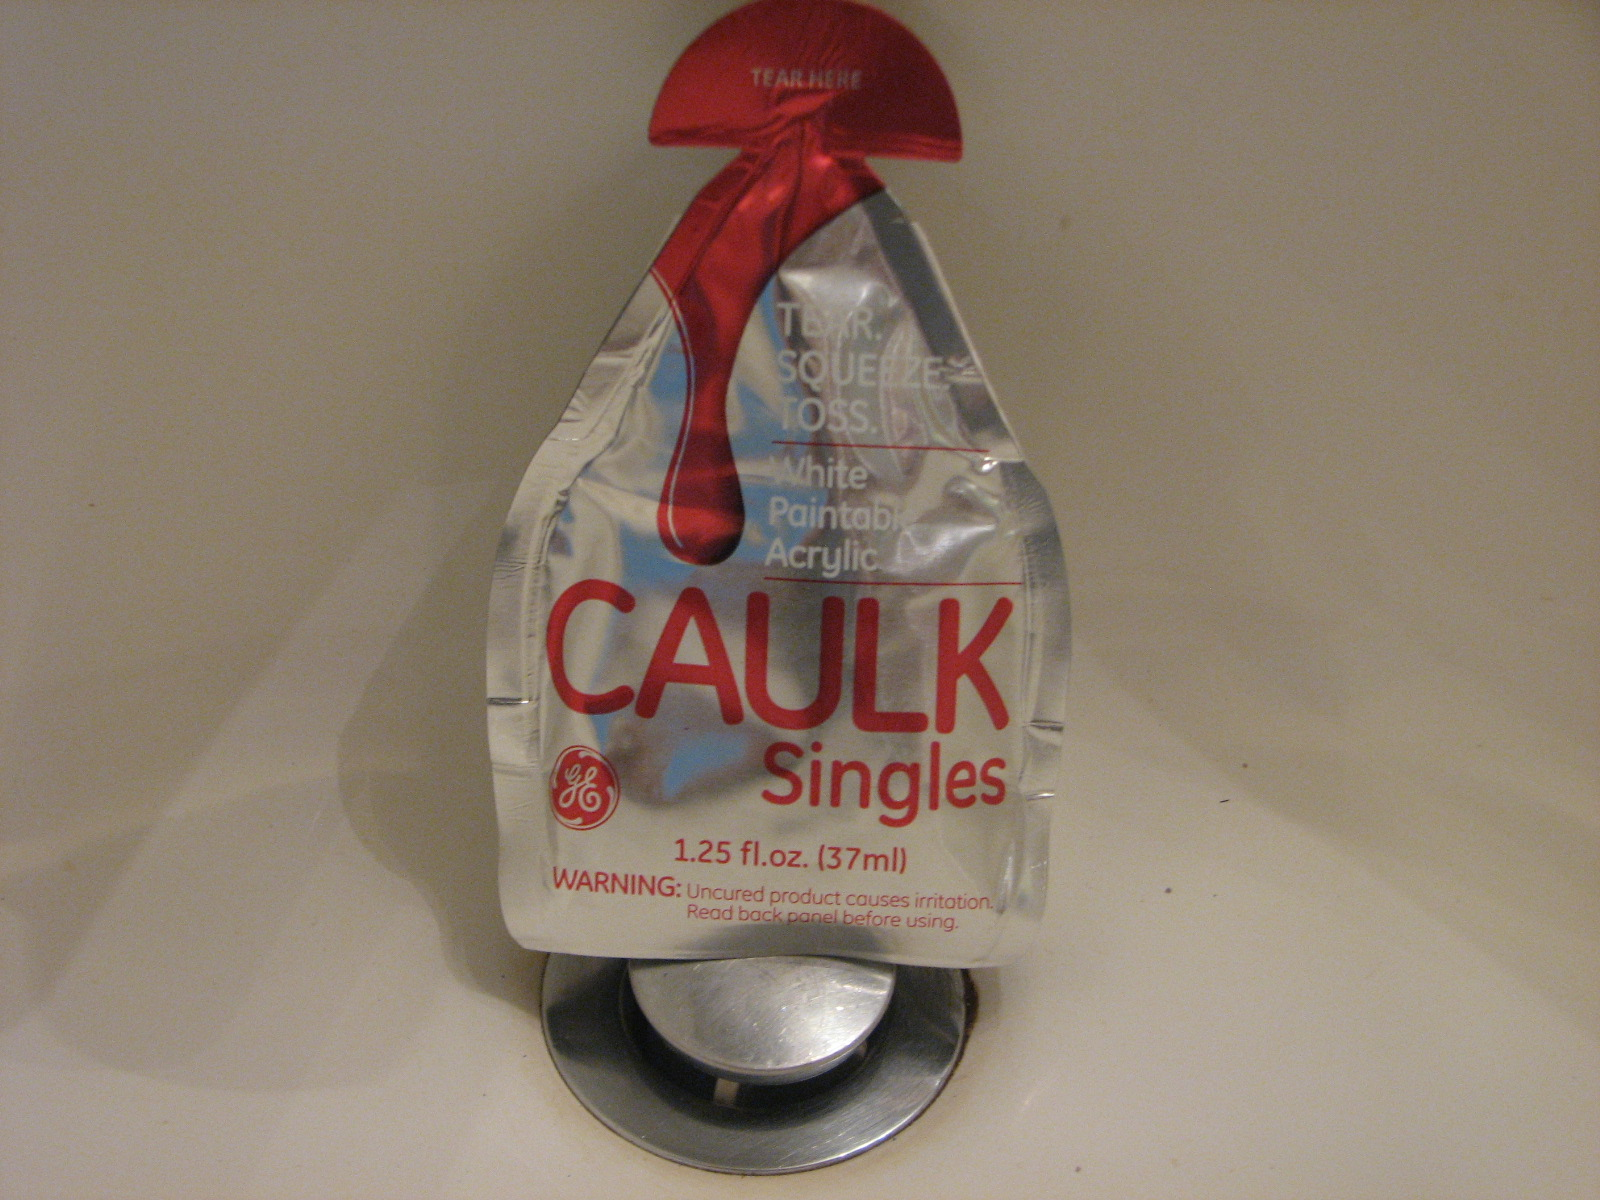 GE.Caulk.Singles.Project 010.JPG